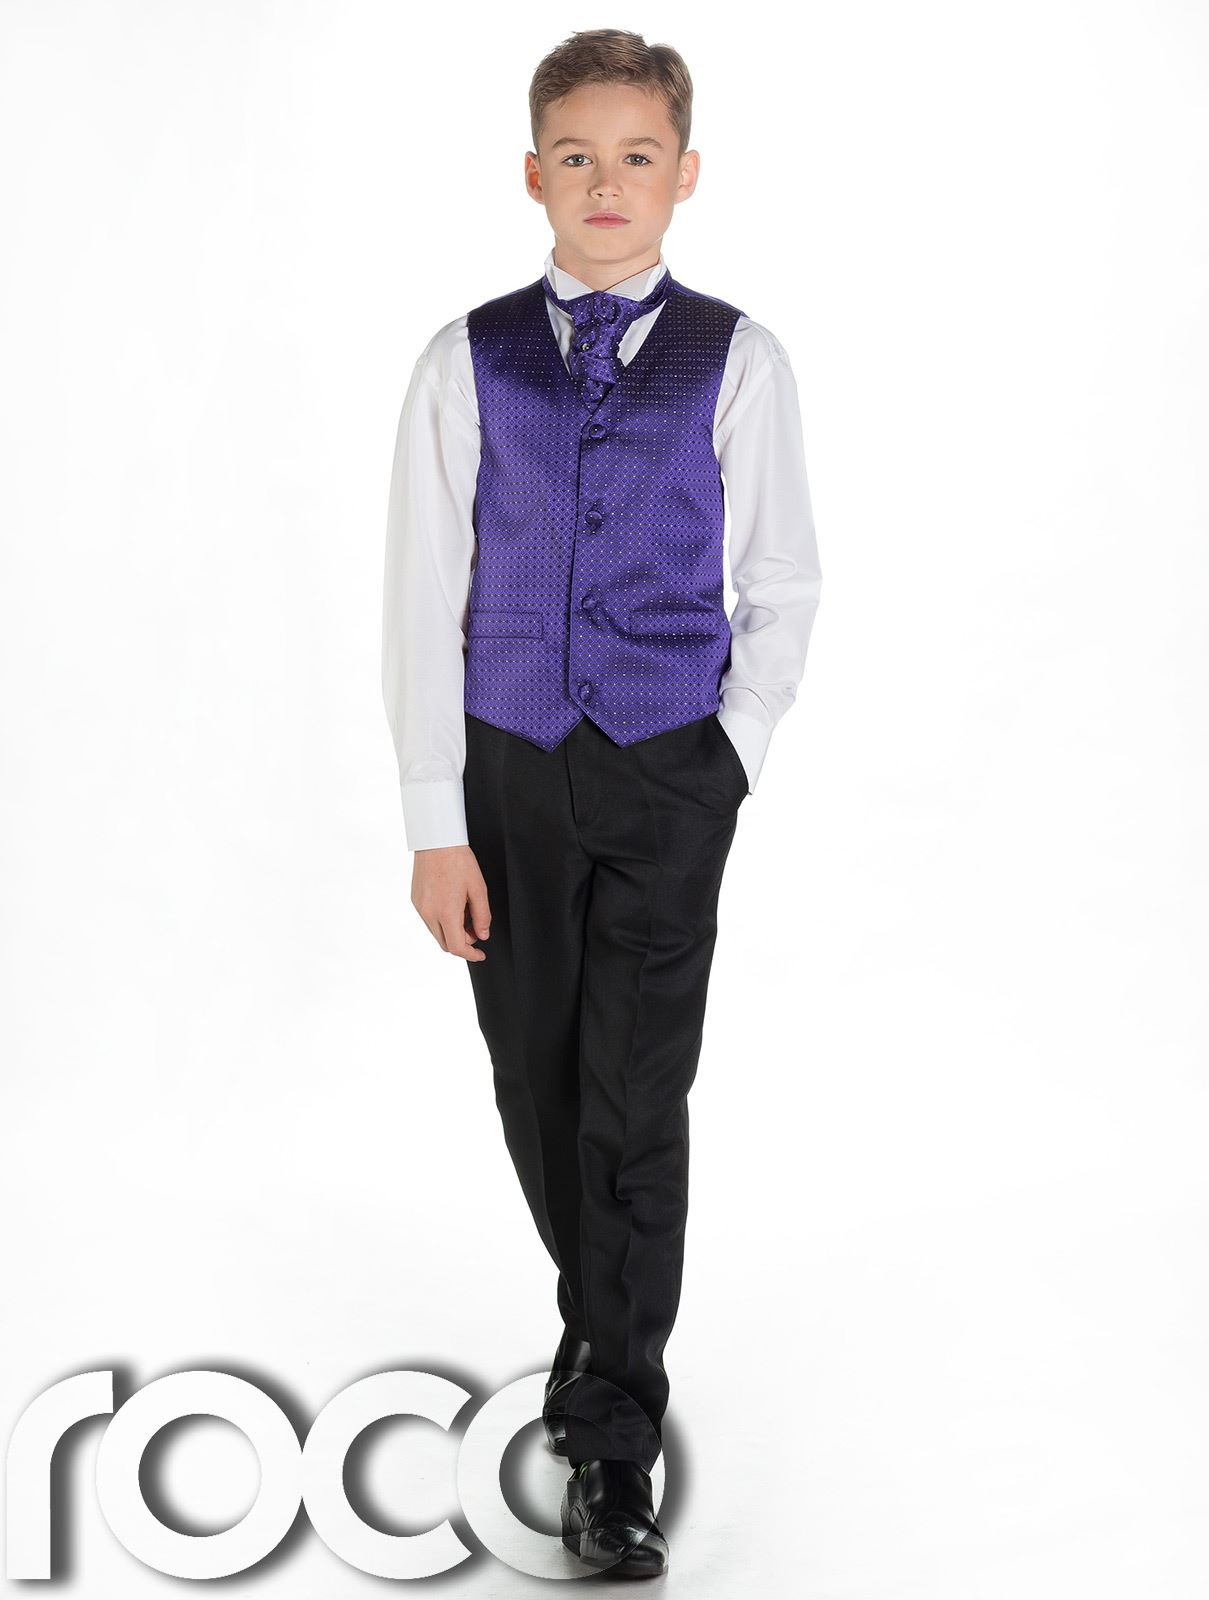 Boys Waistcoat Suit, Boys Wedding Suits, Page Boy Suits, Black ...